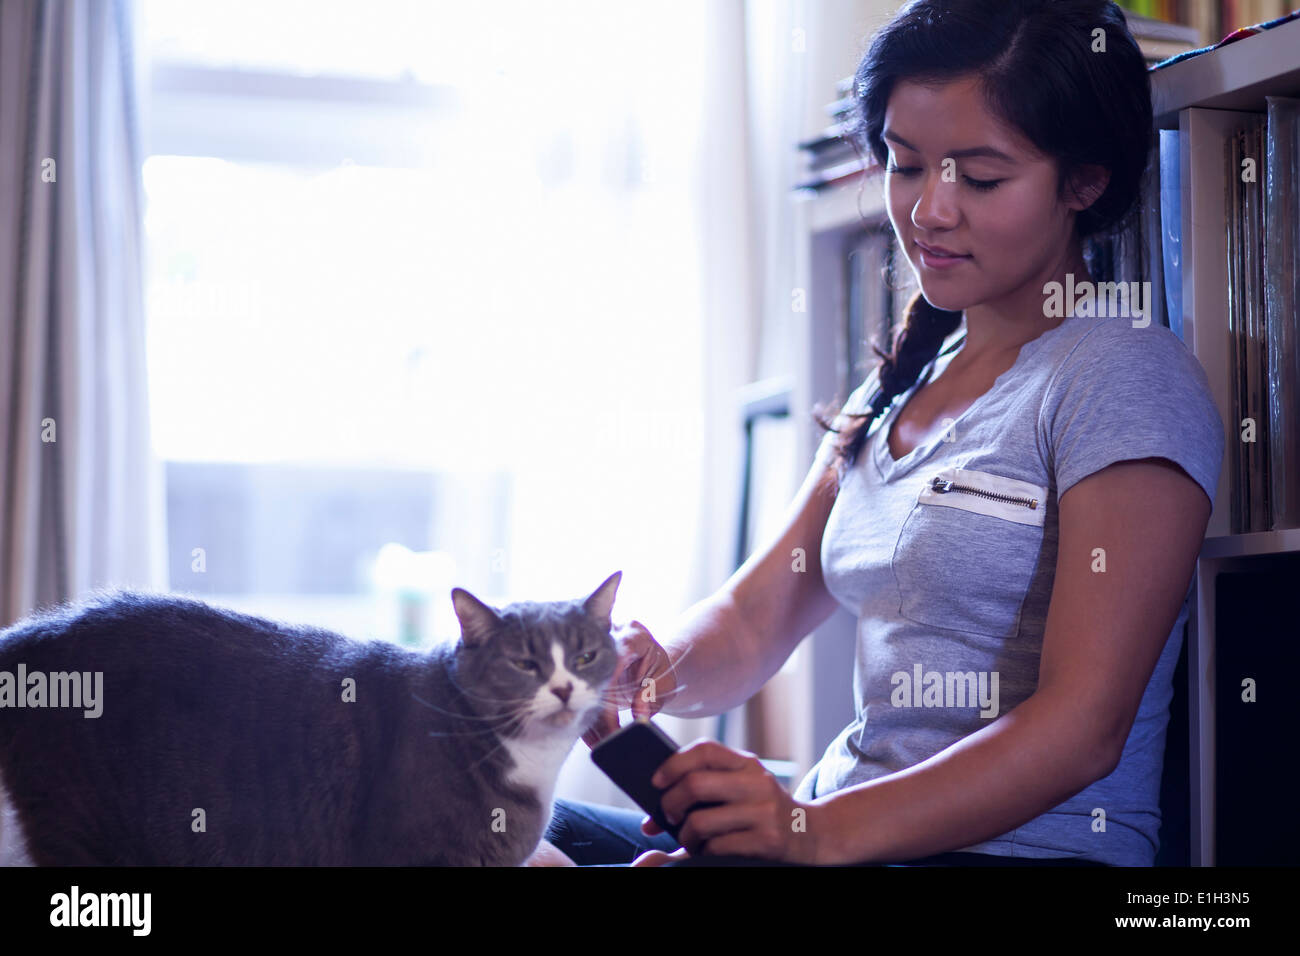 Young woman holding cellular phone stroking cat - Stock Image